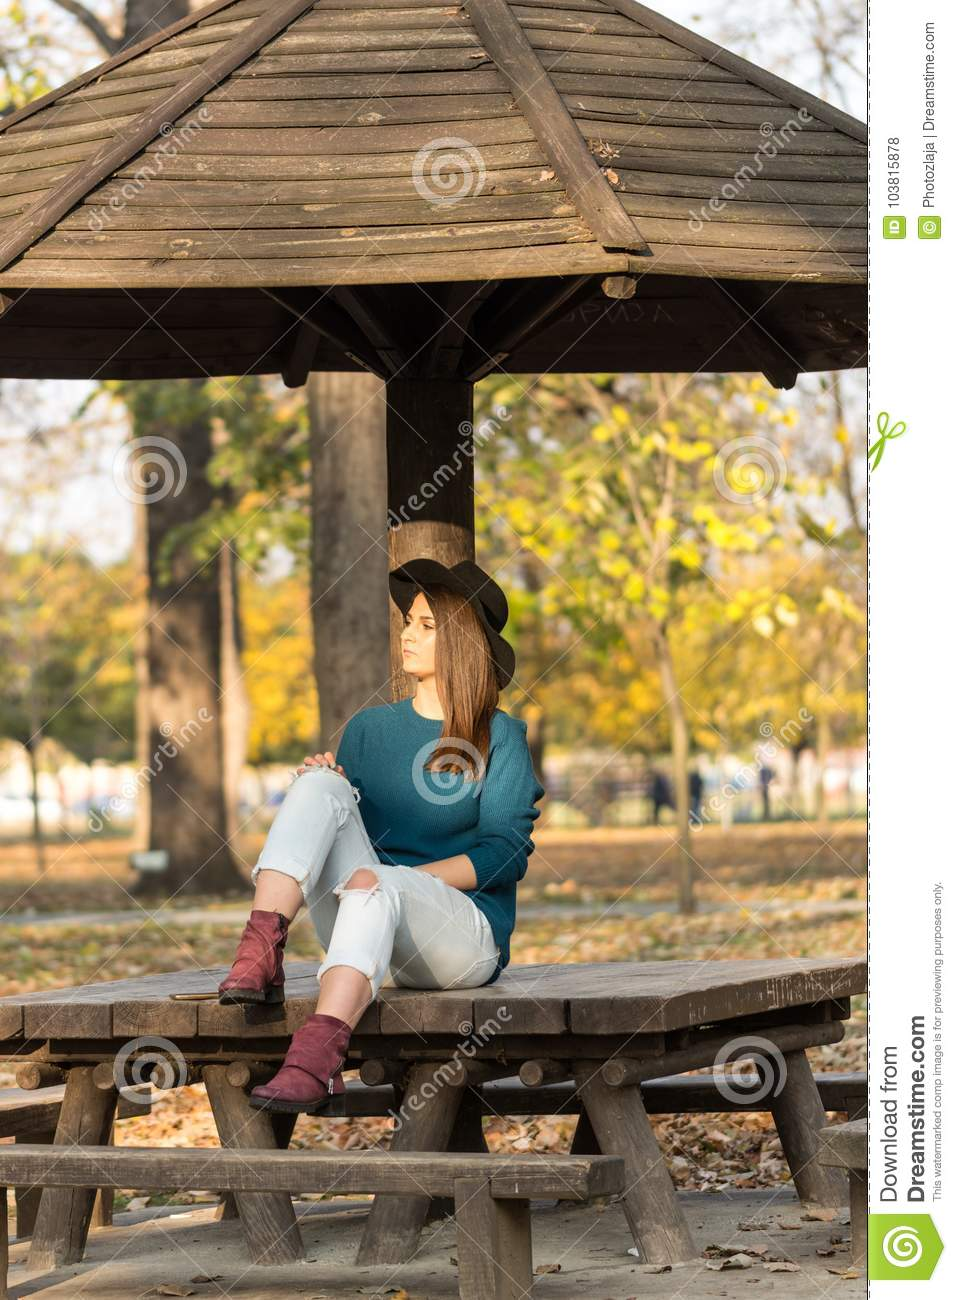 bb84634e33977 Beautiful teenage girl sitting on the park bench with black hat blue sweater  and ripped jeans with blurred autumn leaves in the background.